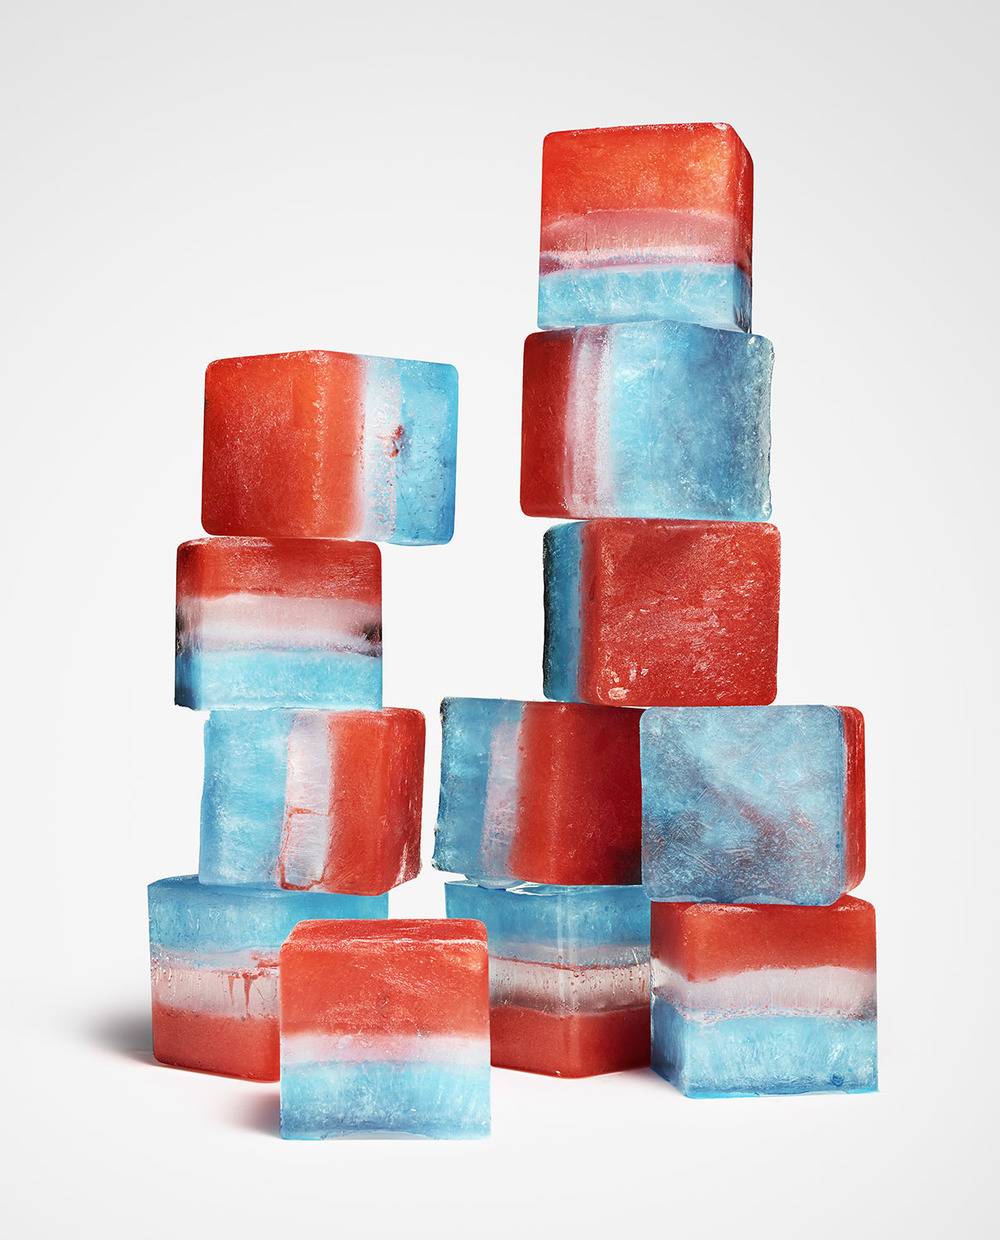 Red White & Blue Ice Cubes